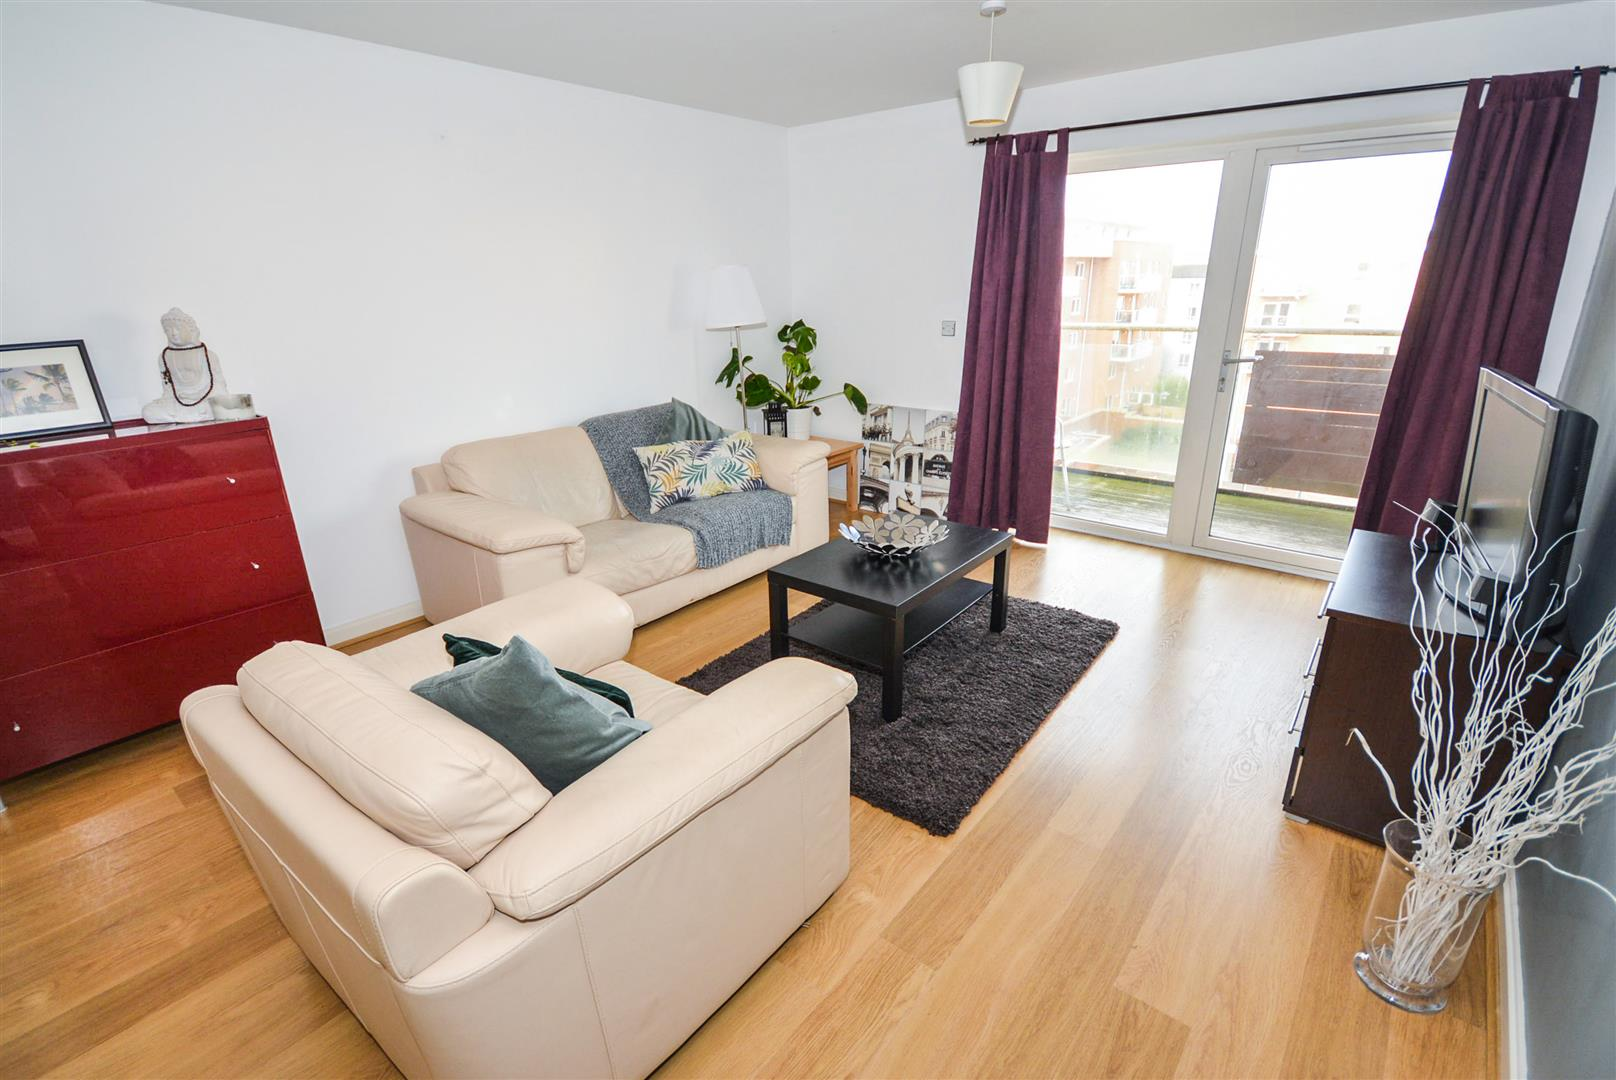 1 bed apartment for sale in Chandlery Way, Cardiff 11